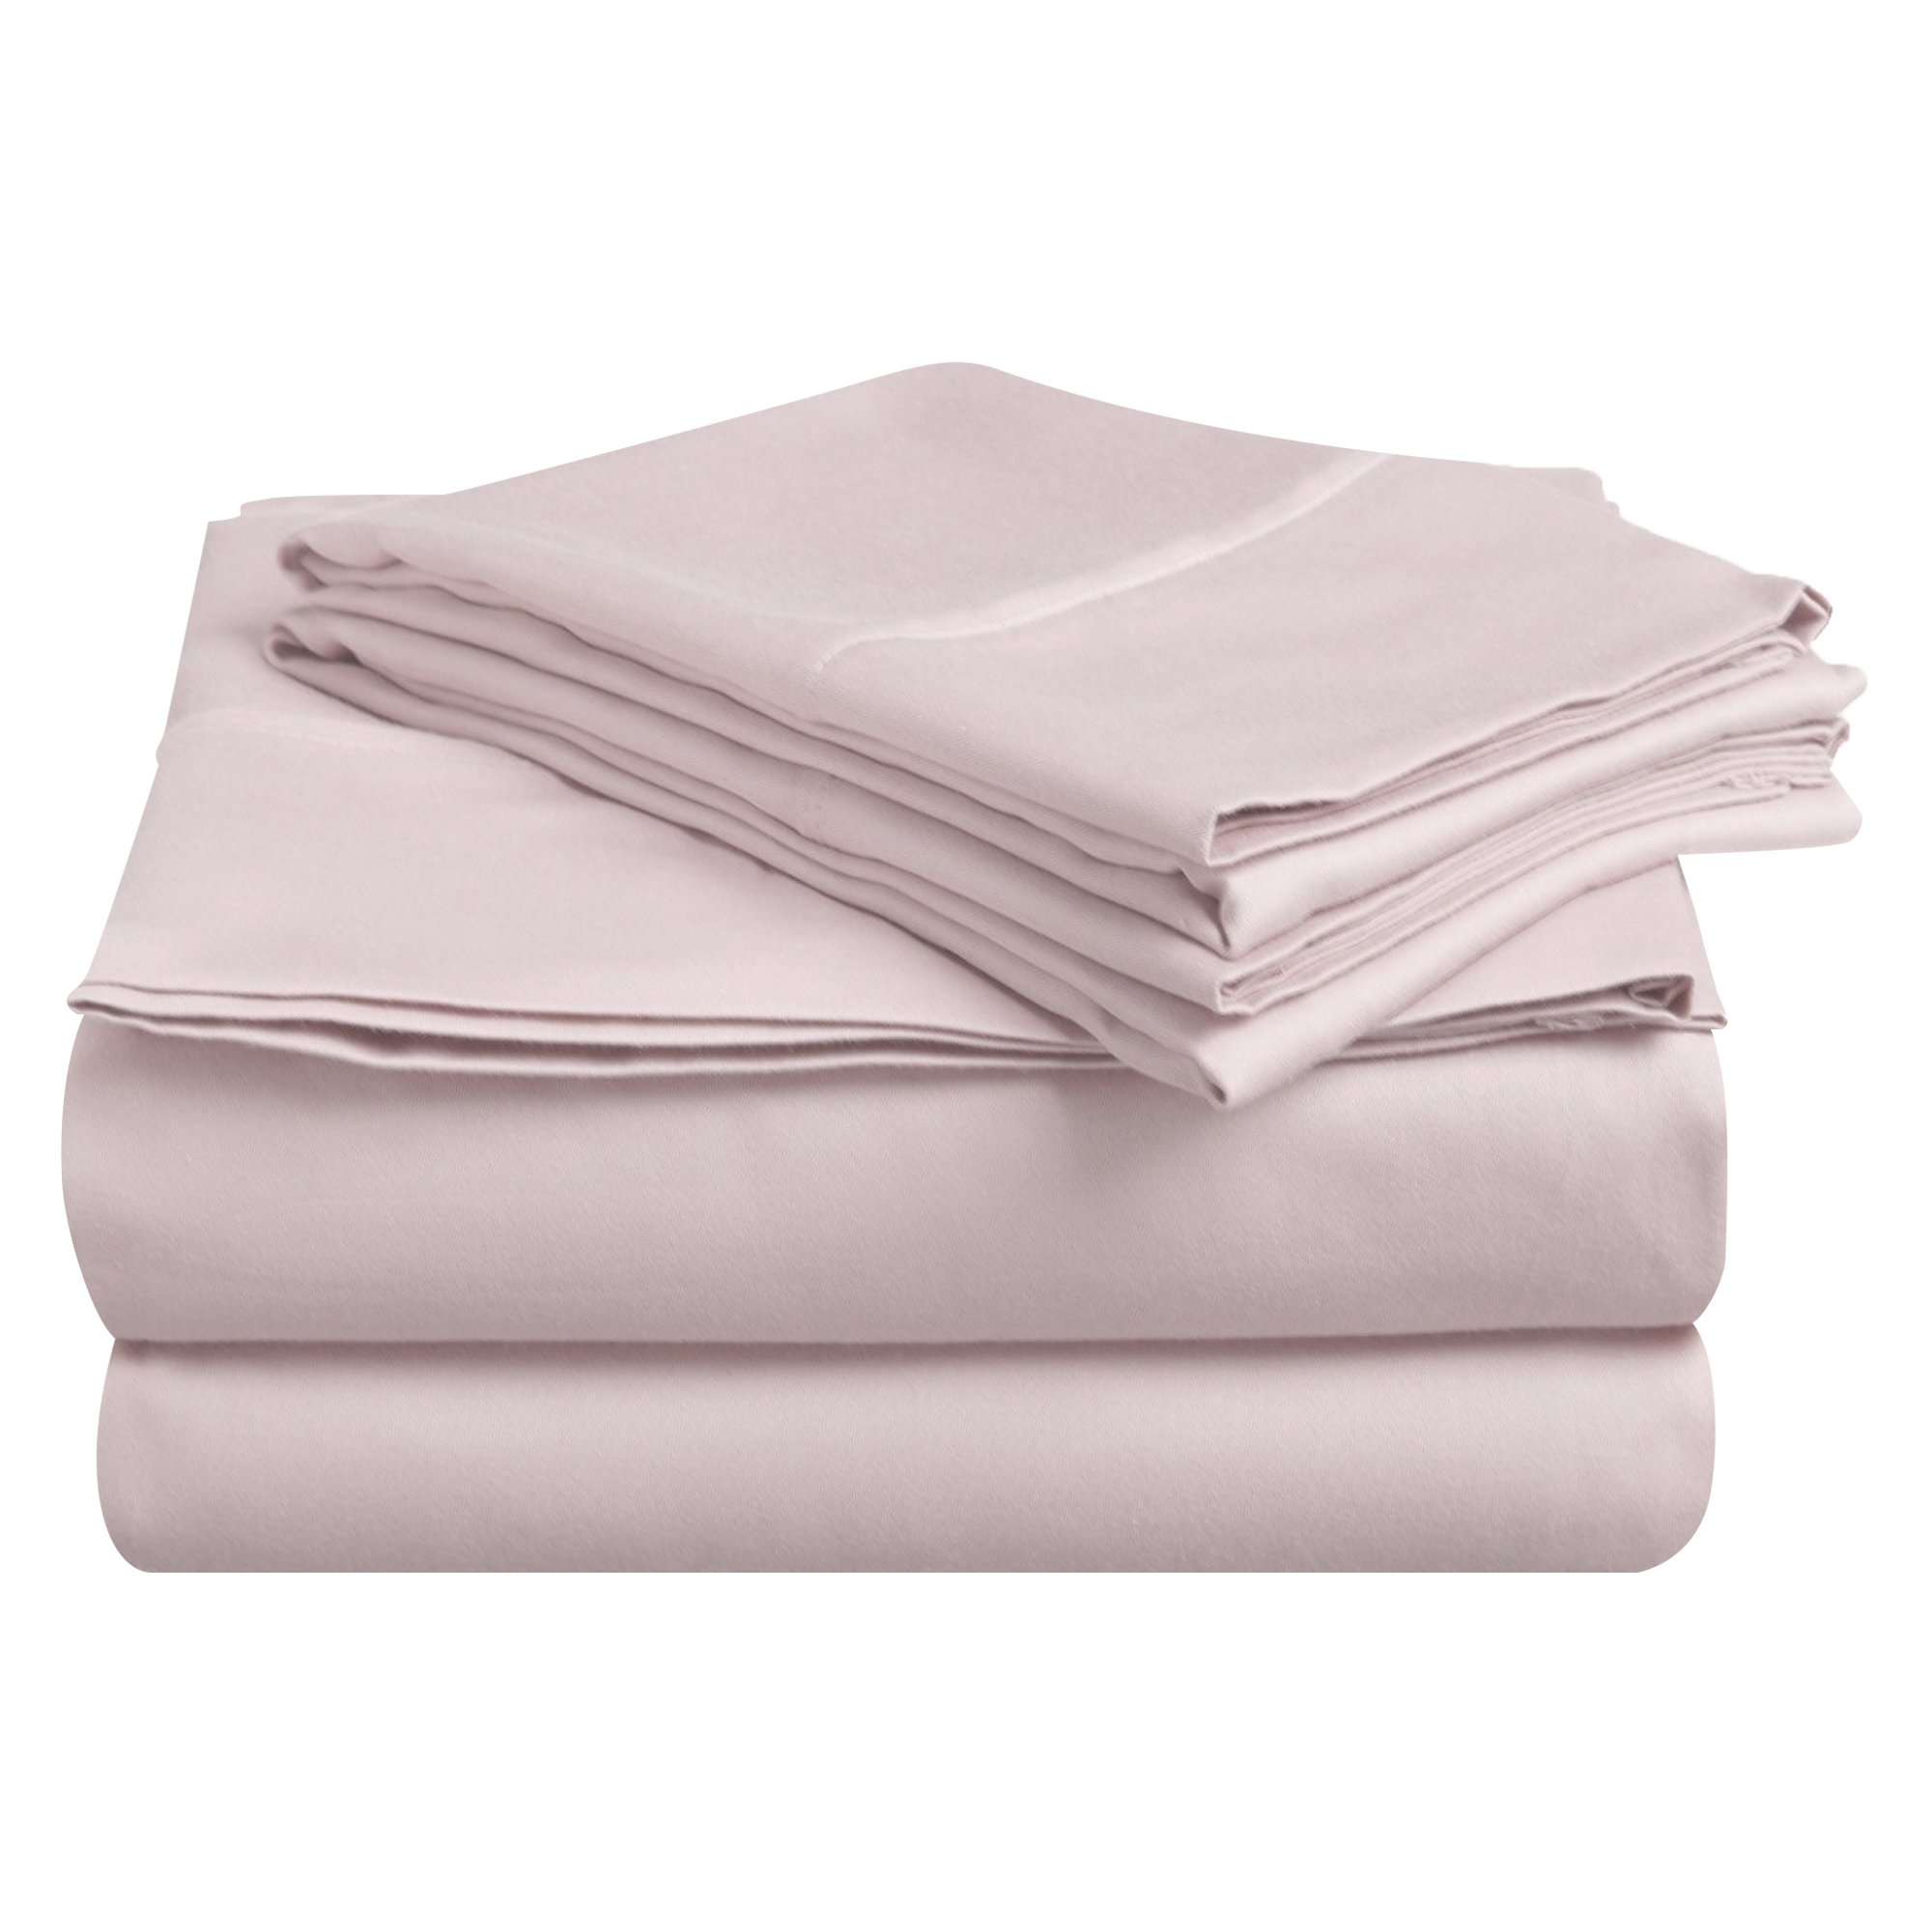 Superior 100% Premium Combed Cotton, Deep-Fitting Pocket Soft and Smooth 4 Piece Sheet and Pillowcase Cover Set, California King - Lilac